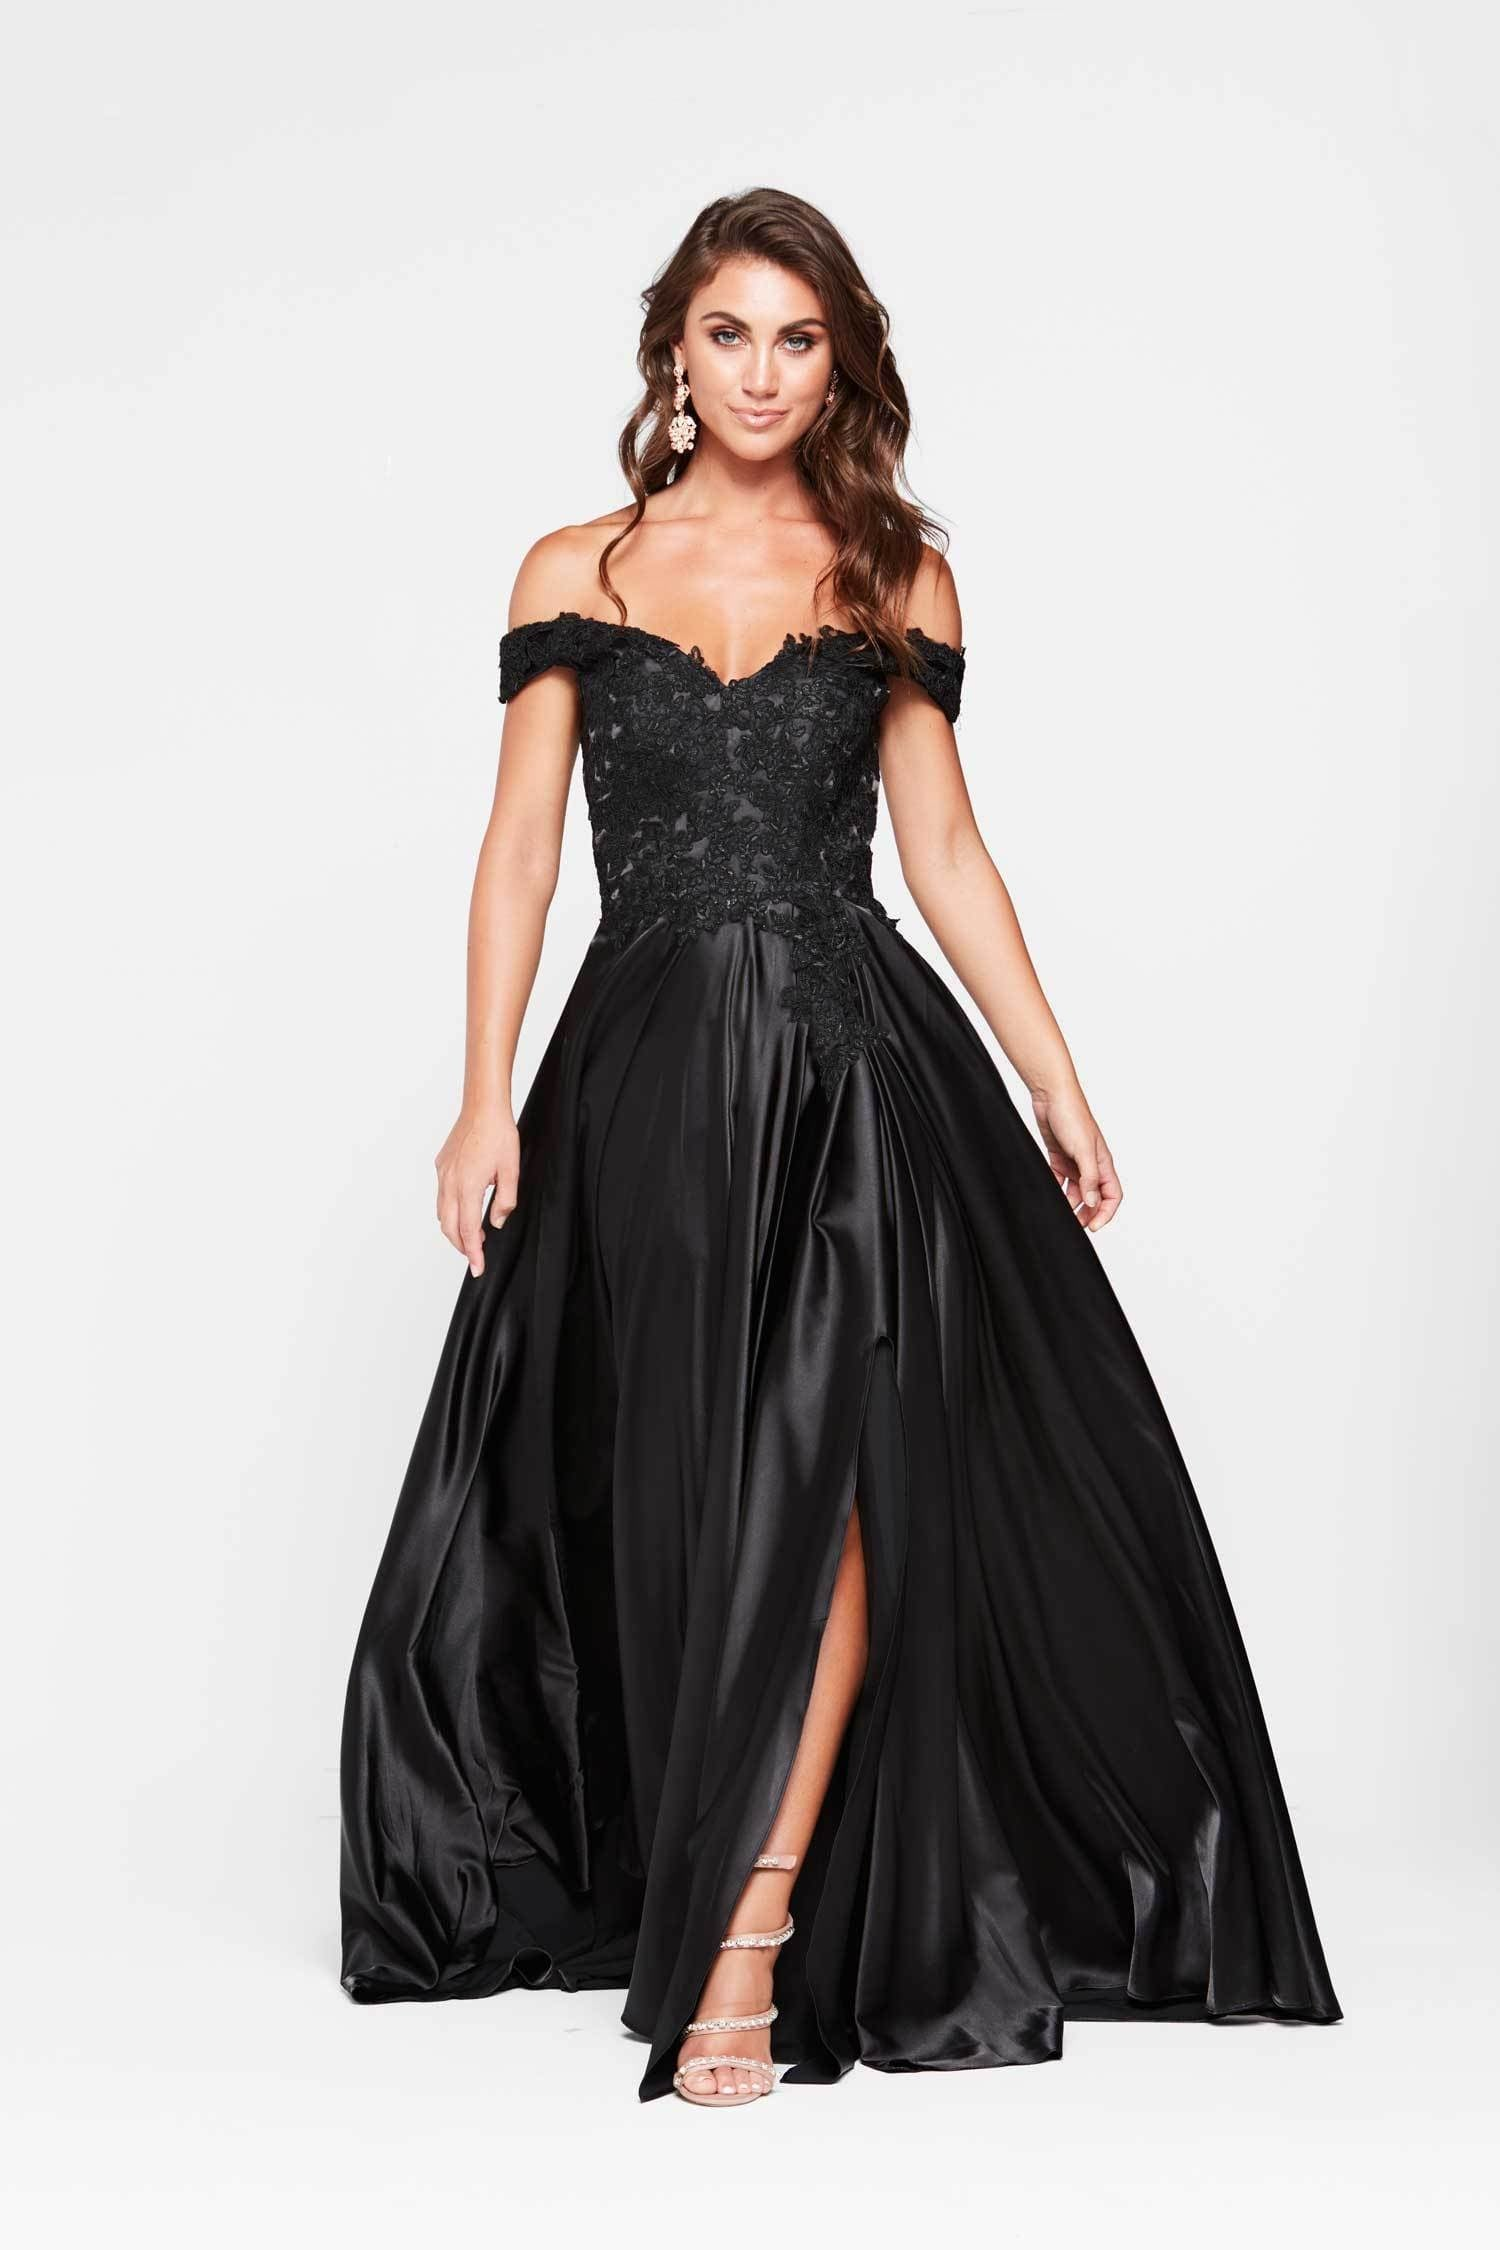 Freya Dress - Black Off Shoulder Lace Satin Split Full Length Gown